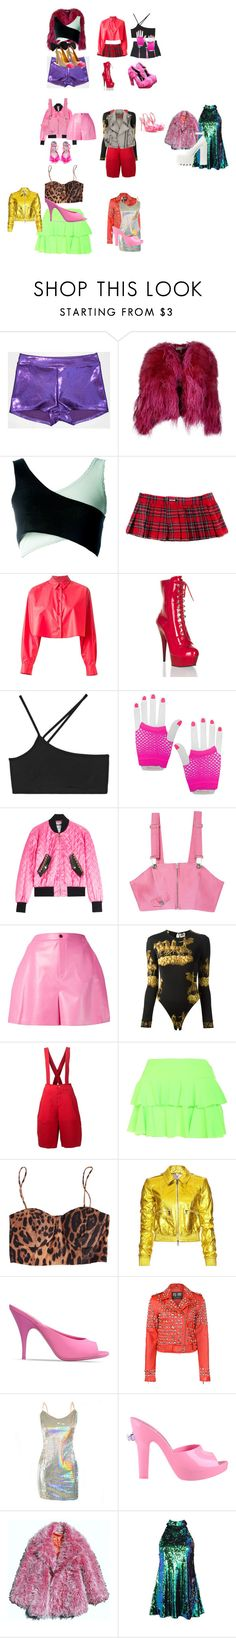 """Untitled #2529"" by aurorazoejadefleurbiancasarah ❤ liked on Polyvore featuring Emilio Pucci, MM6 Maison Margiela, Kenzo, Helmut Lang, Moschino, Jimmy Choo, Hermès, Comme des Garçons, Sophia Webster and Burberry"